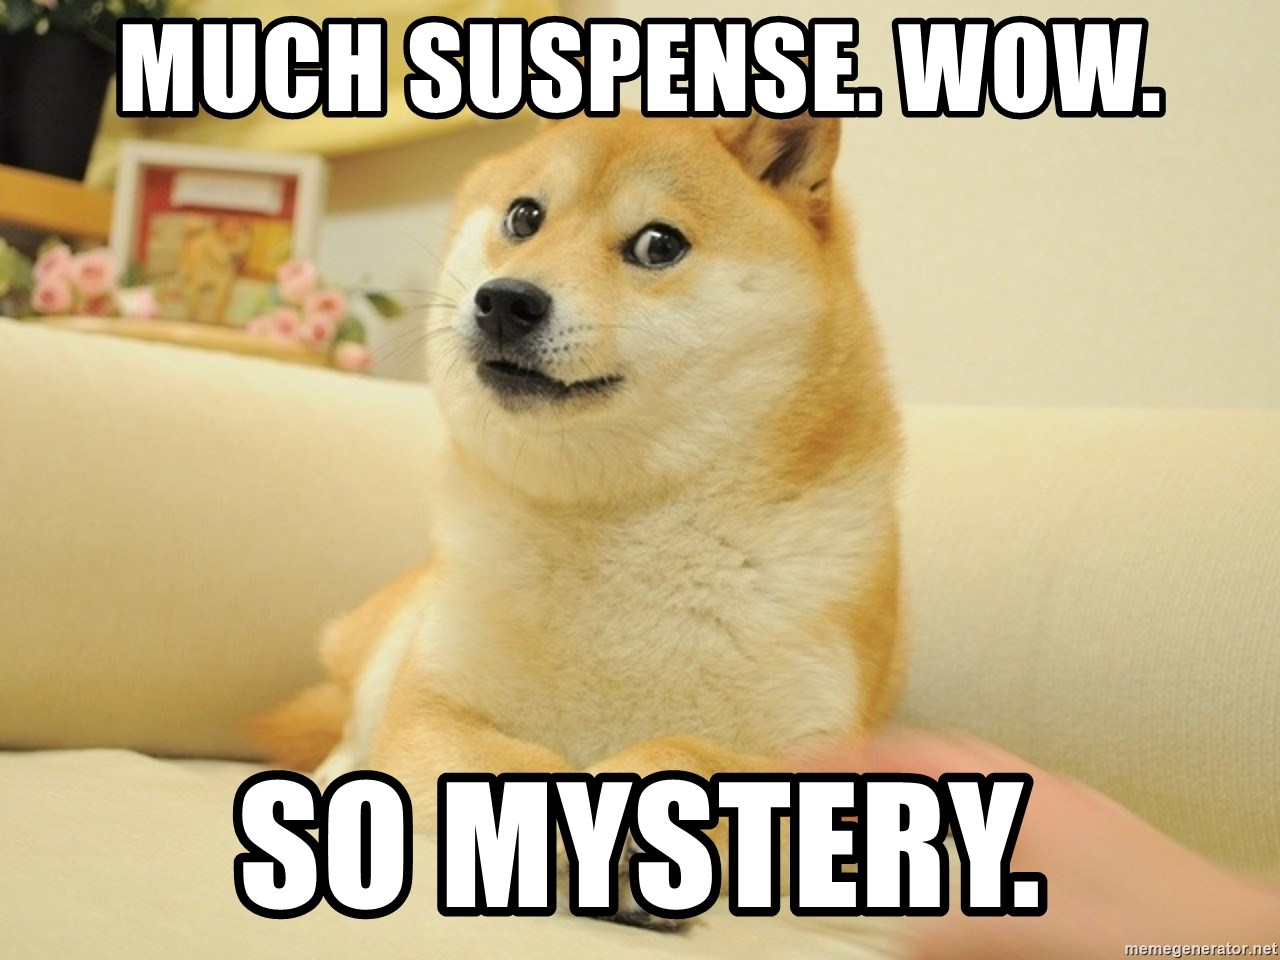 so doge - much suspense. wow. so mystery.